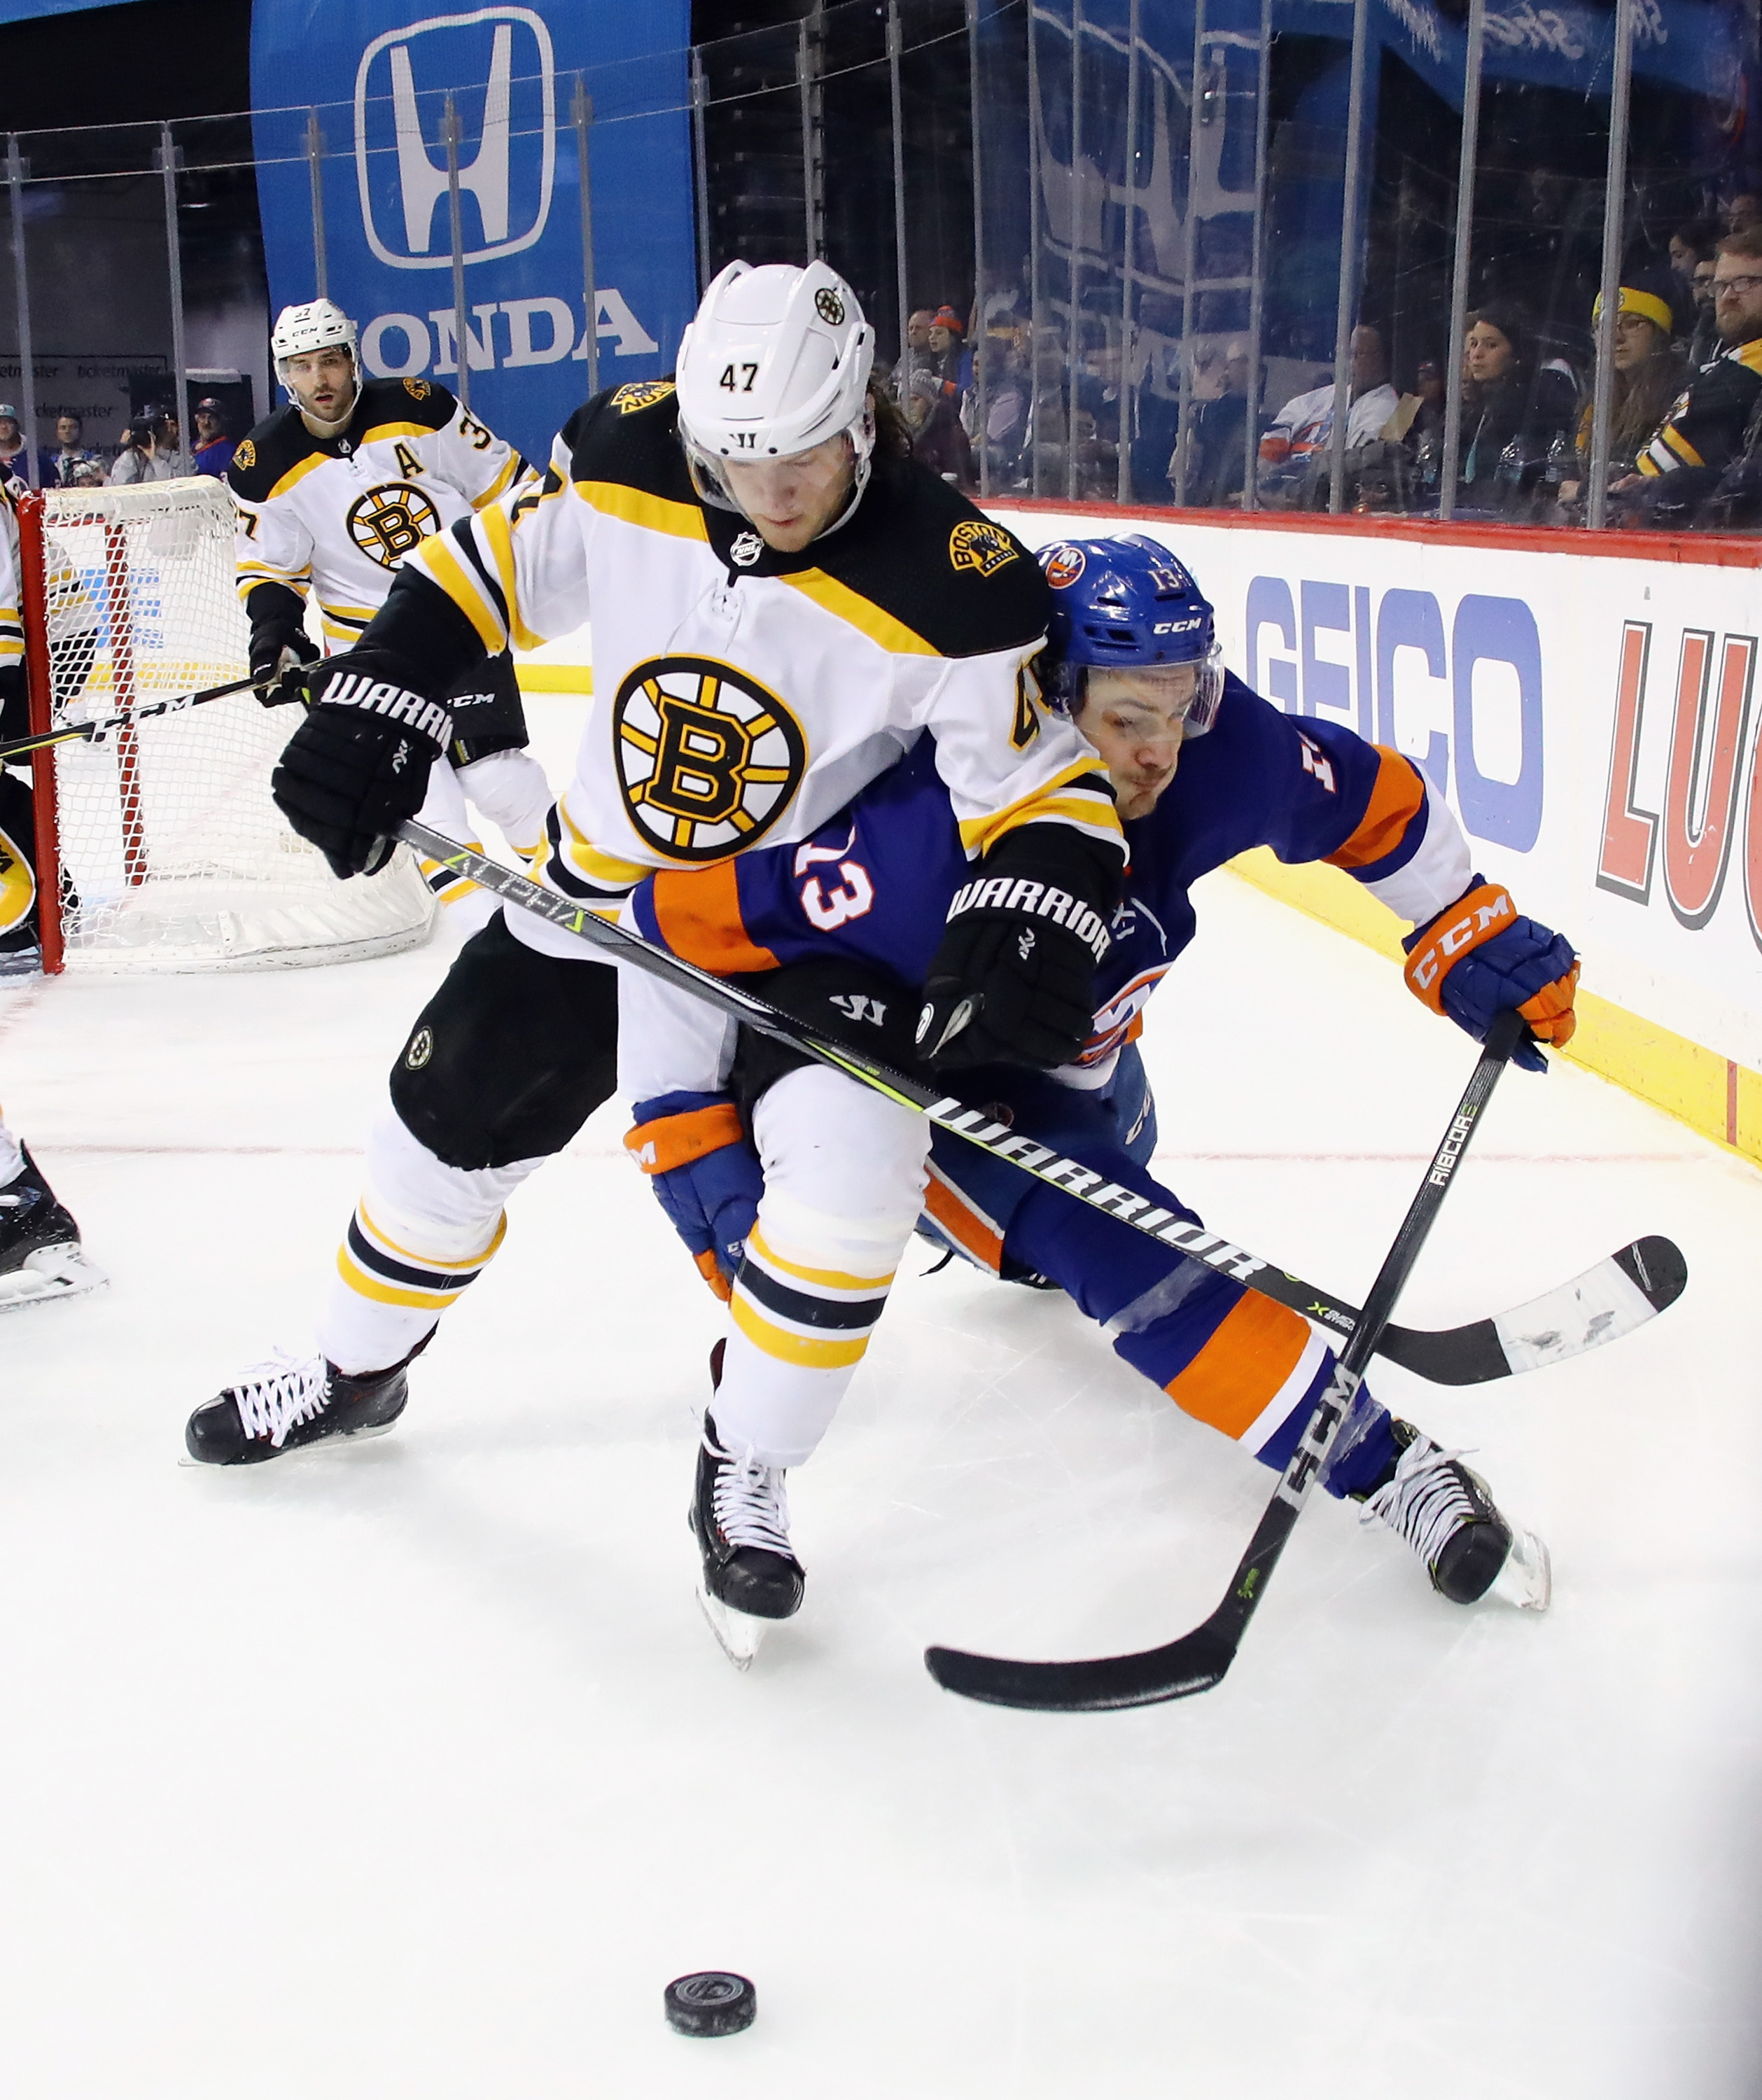 Boston Bruins: Normal Service Resumed Against Islanders